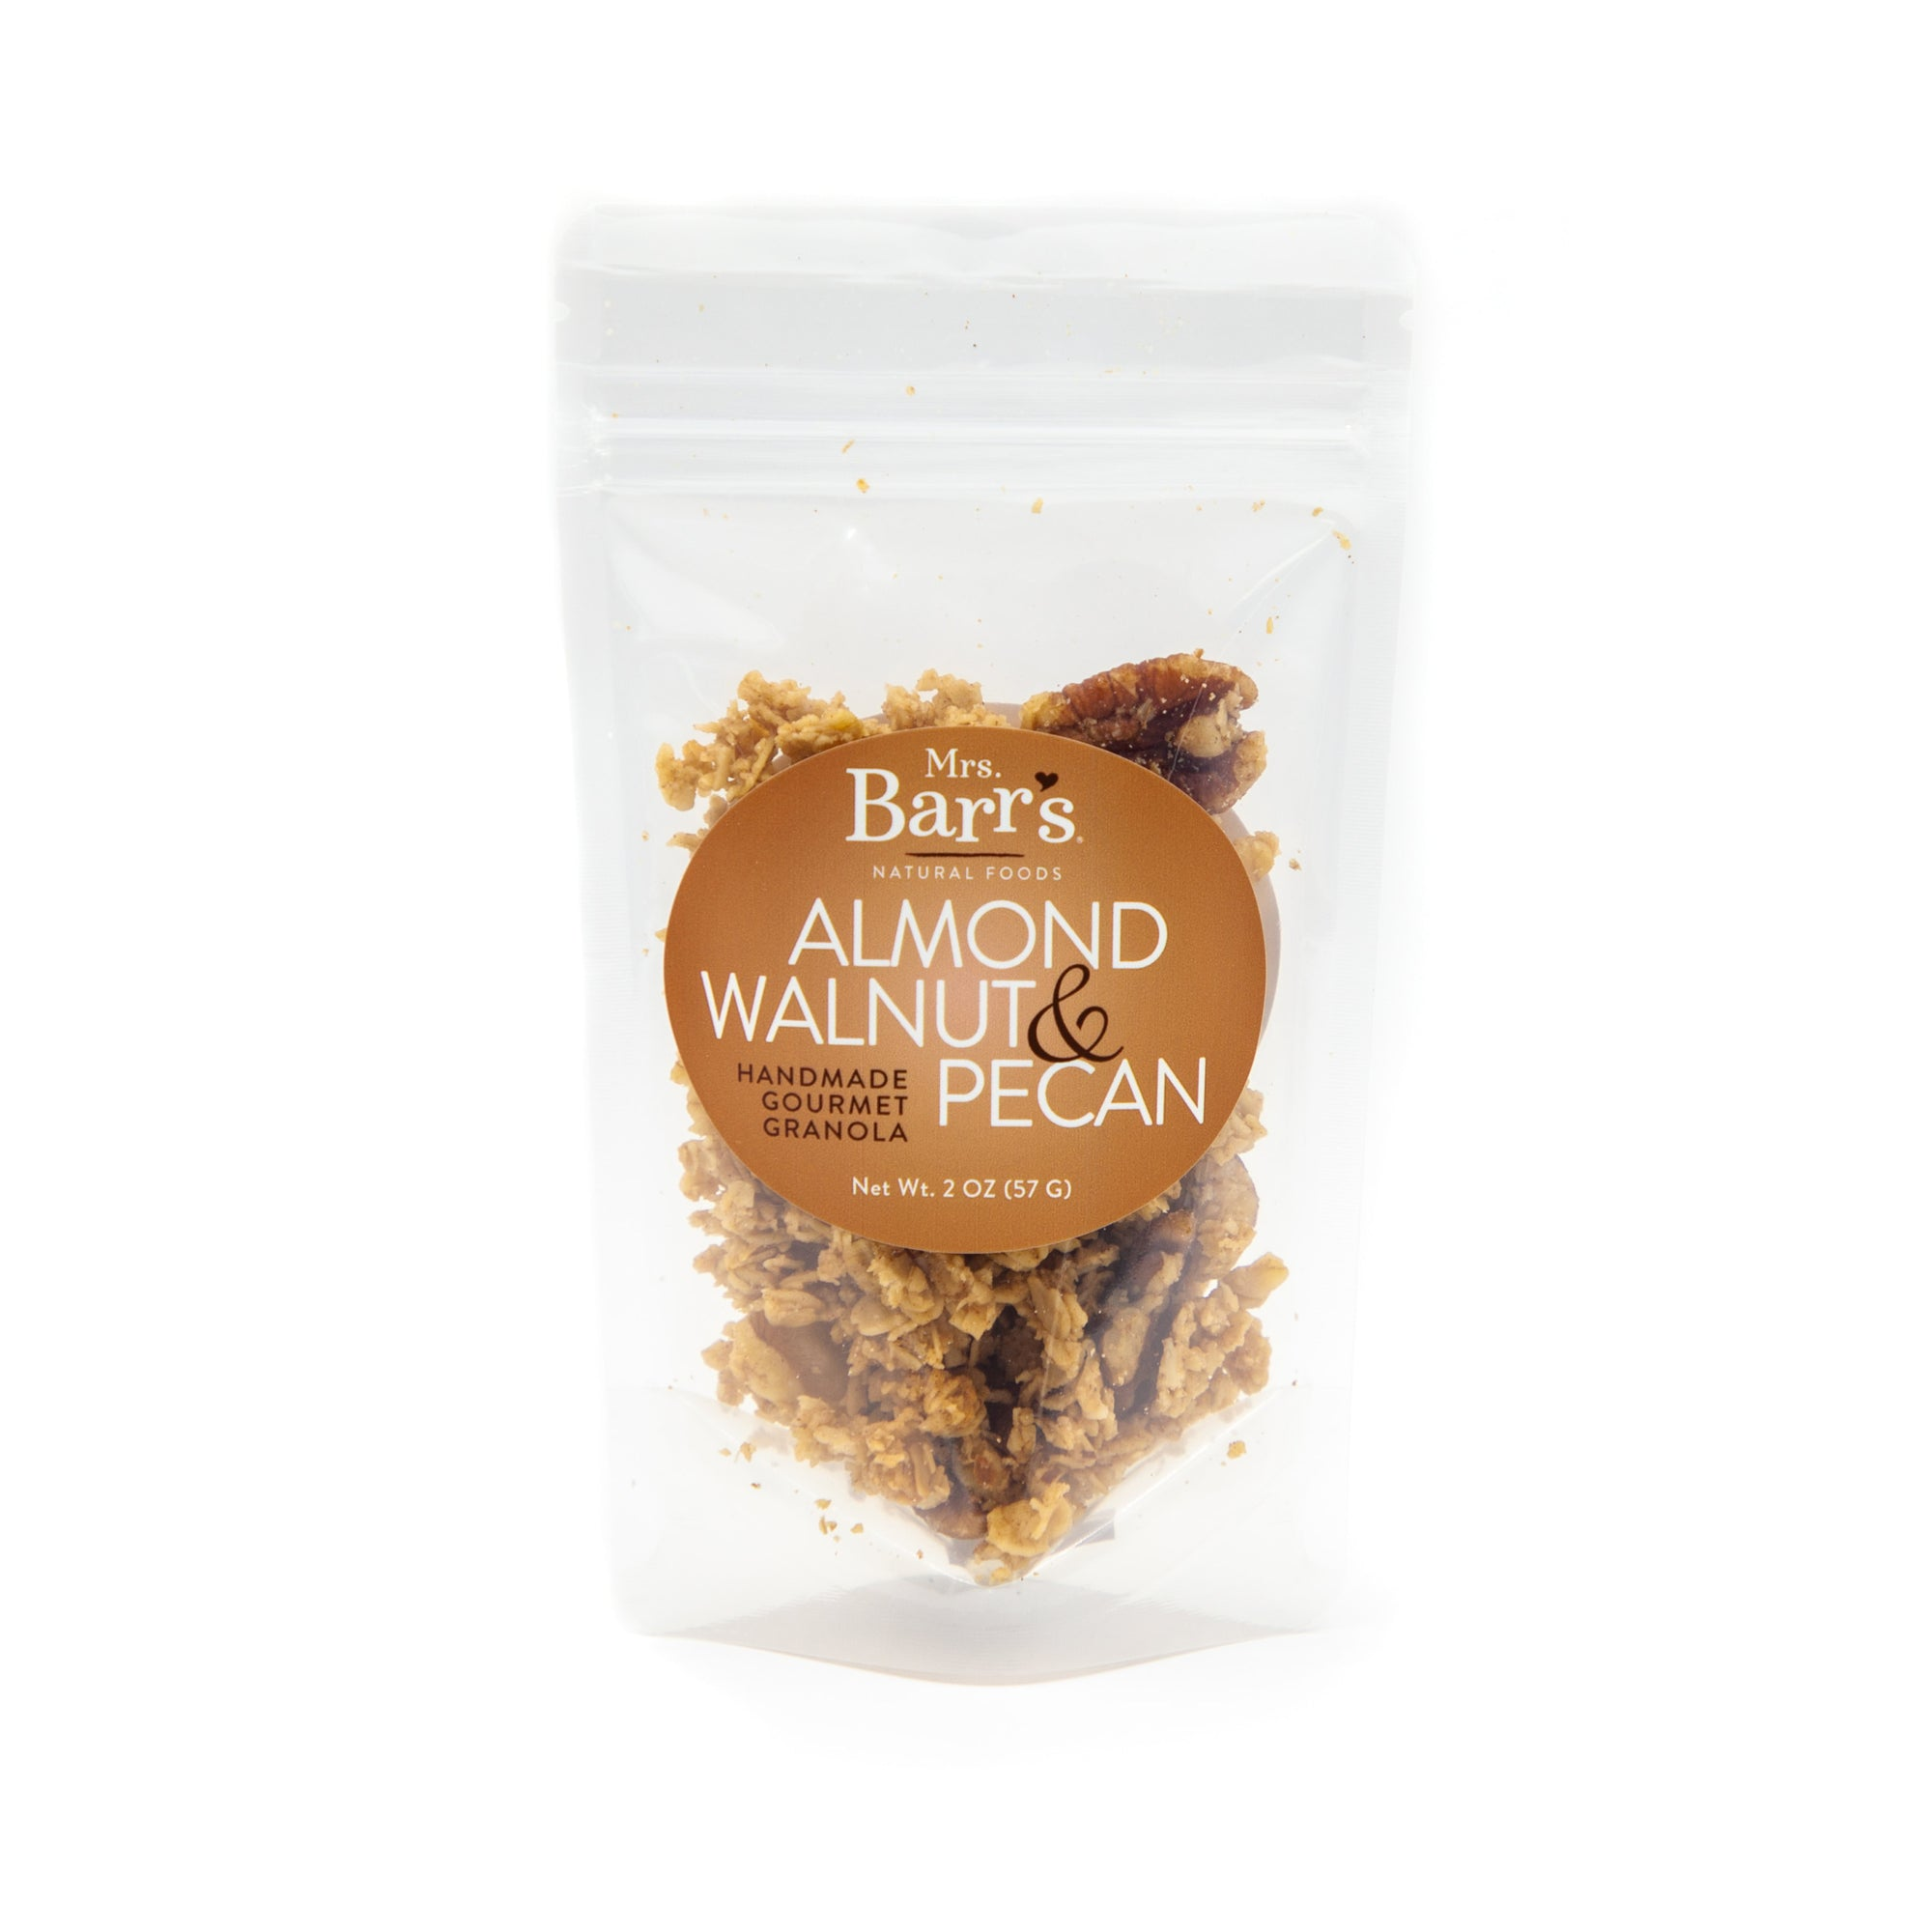 Mini Almond Walnut & Pecan Granola (2oz)